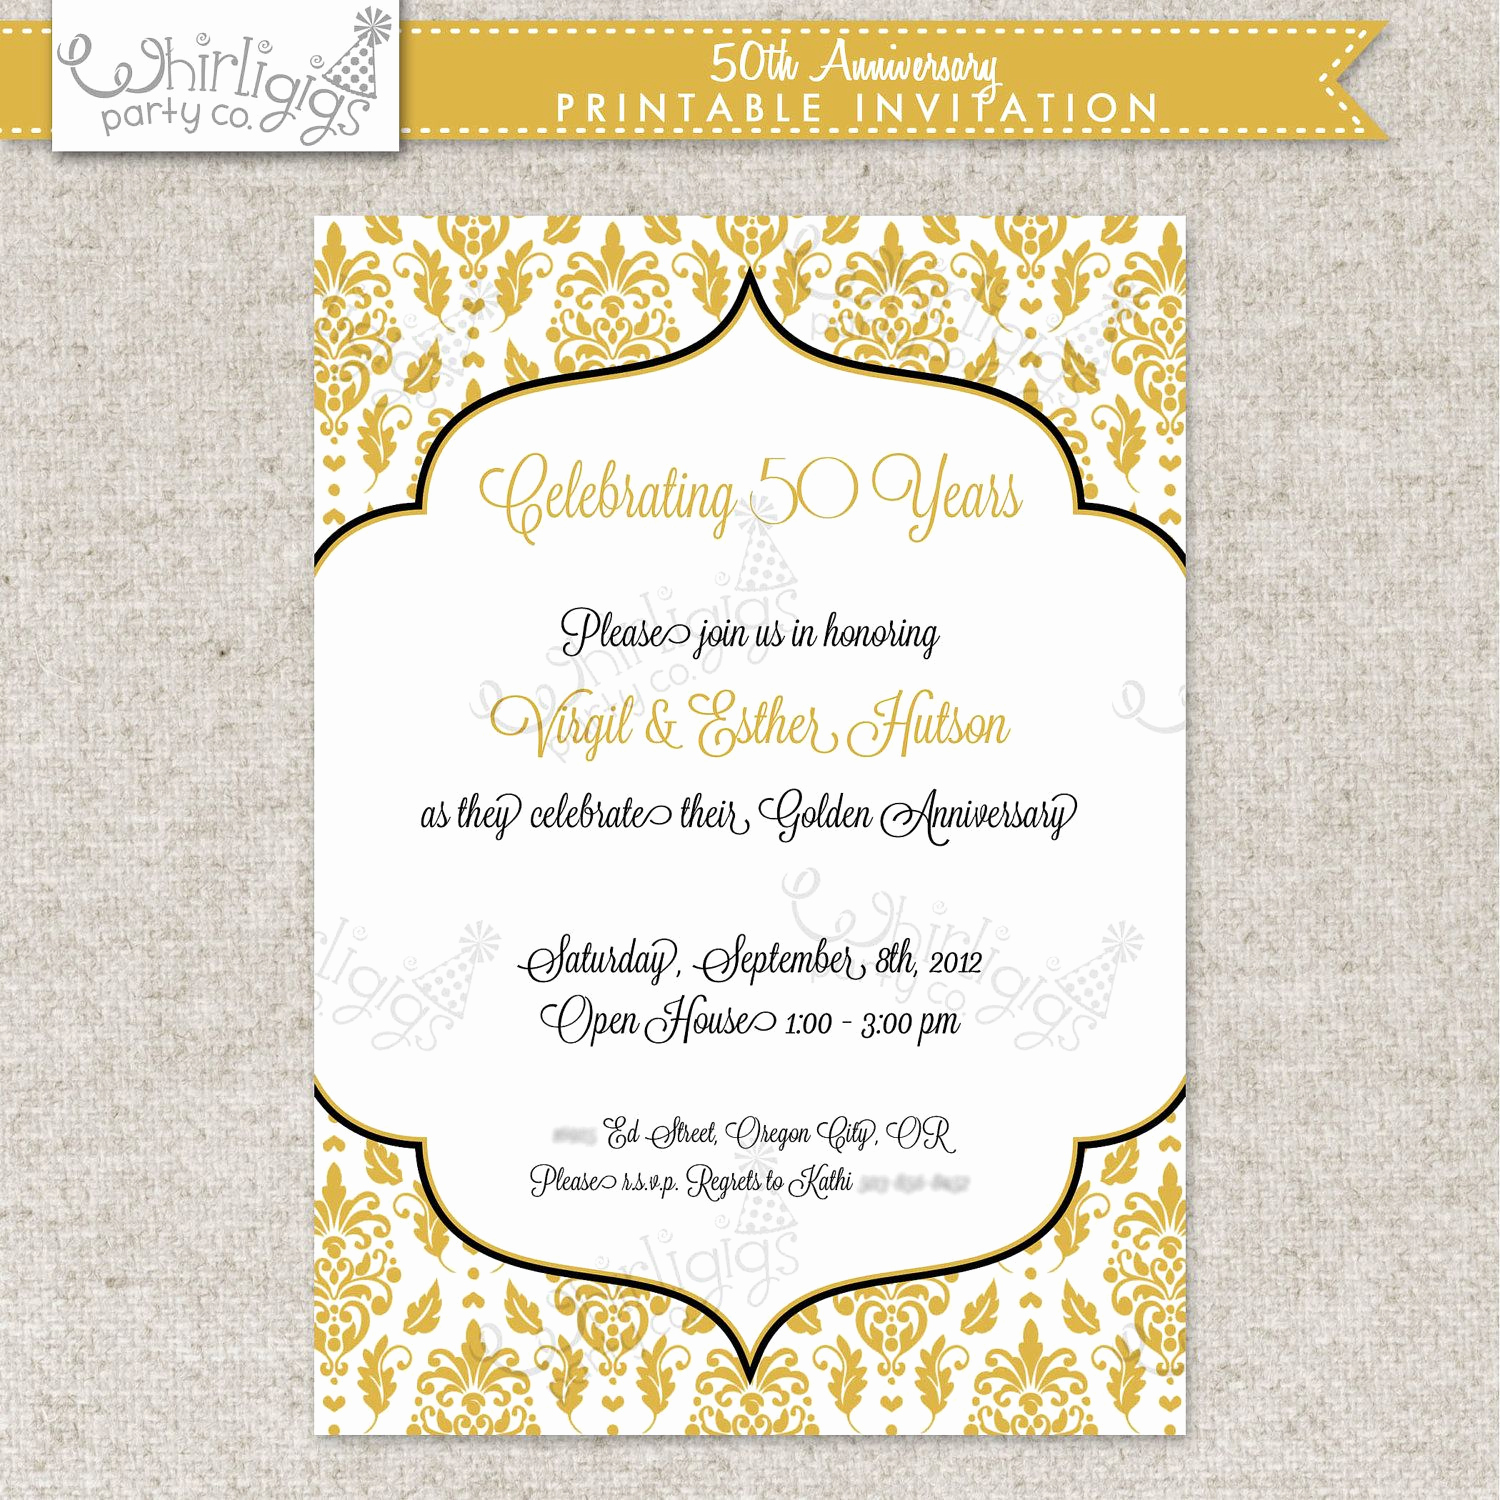 50th Birthday Invitation Ideas Inspirational 50th Anniversary Party Invitation Printable